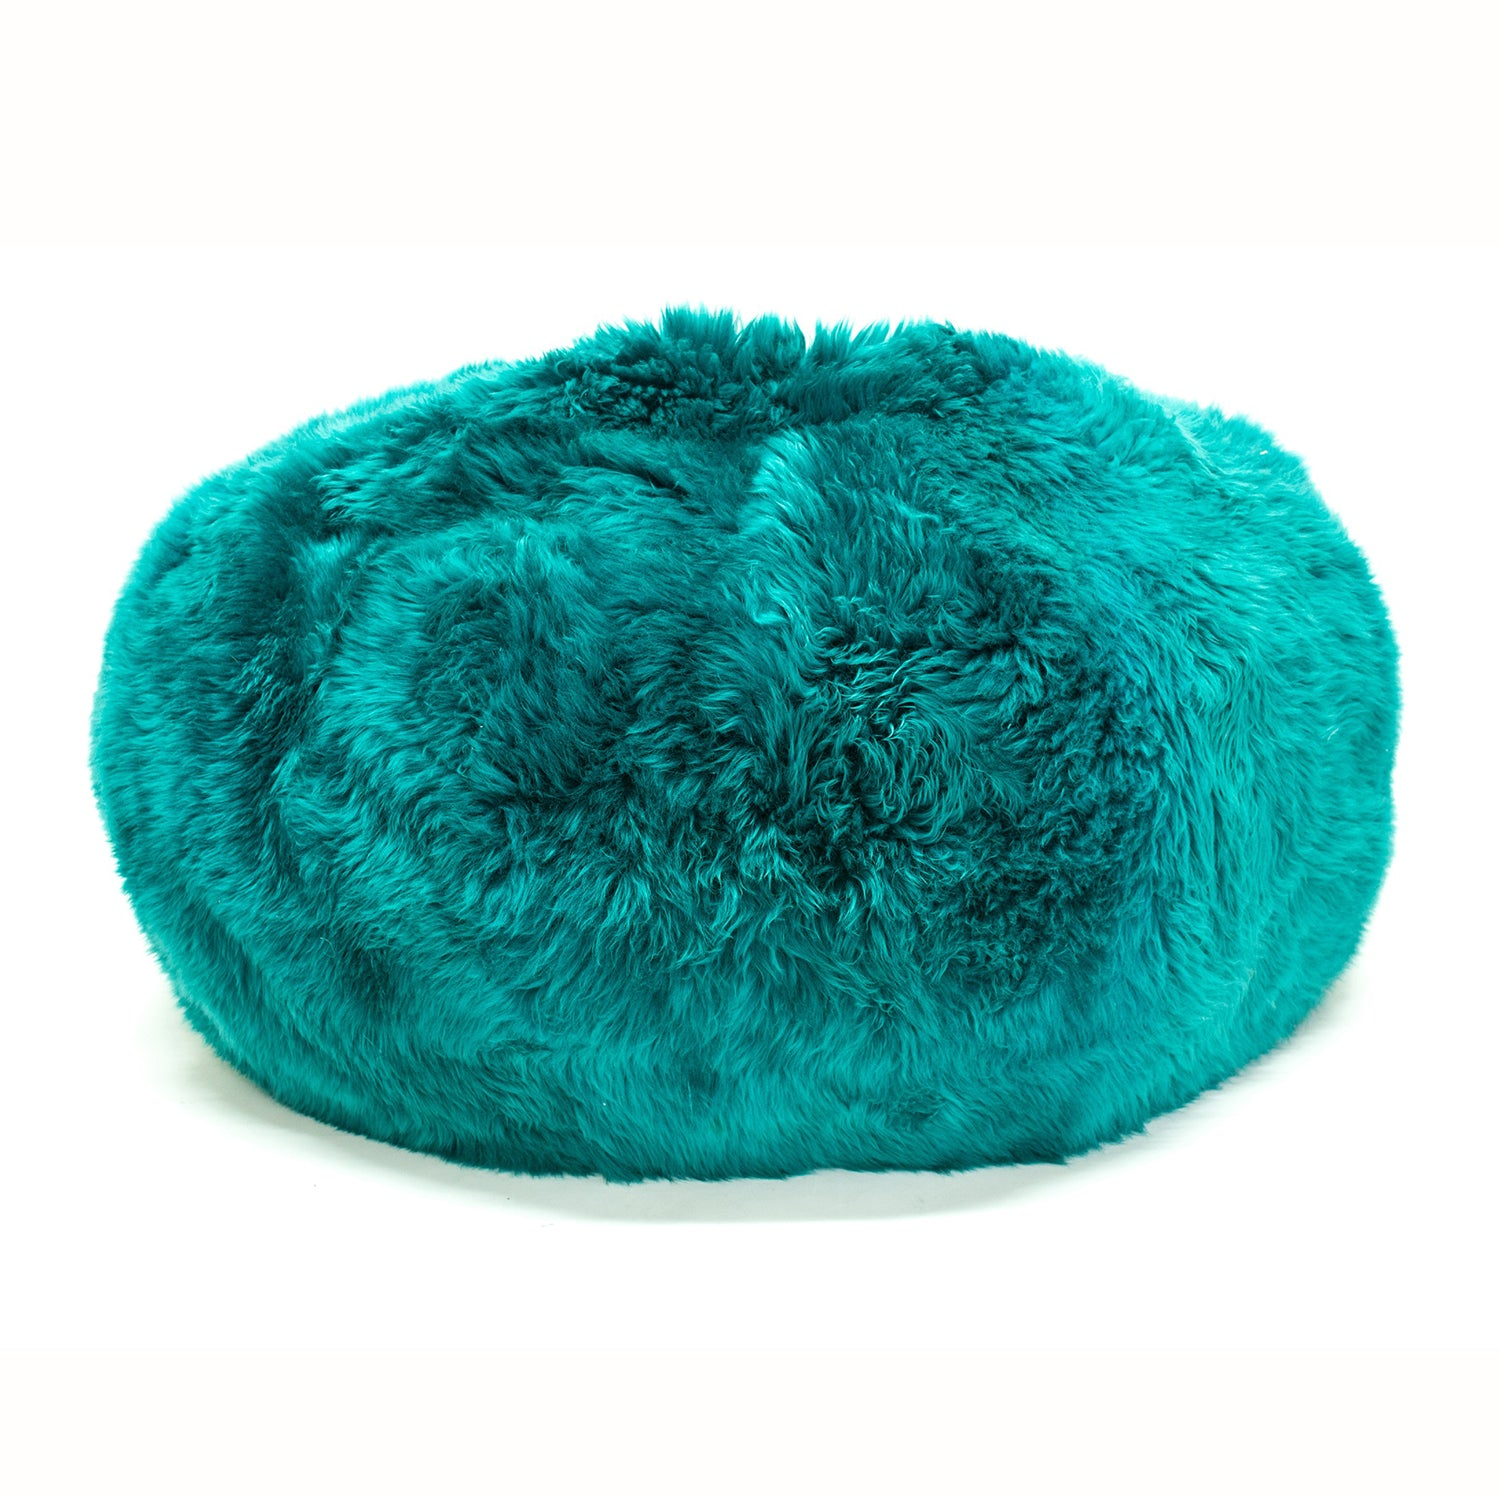 SHEEPSKIN POUF - Long Hair Jade